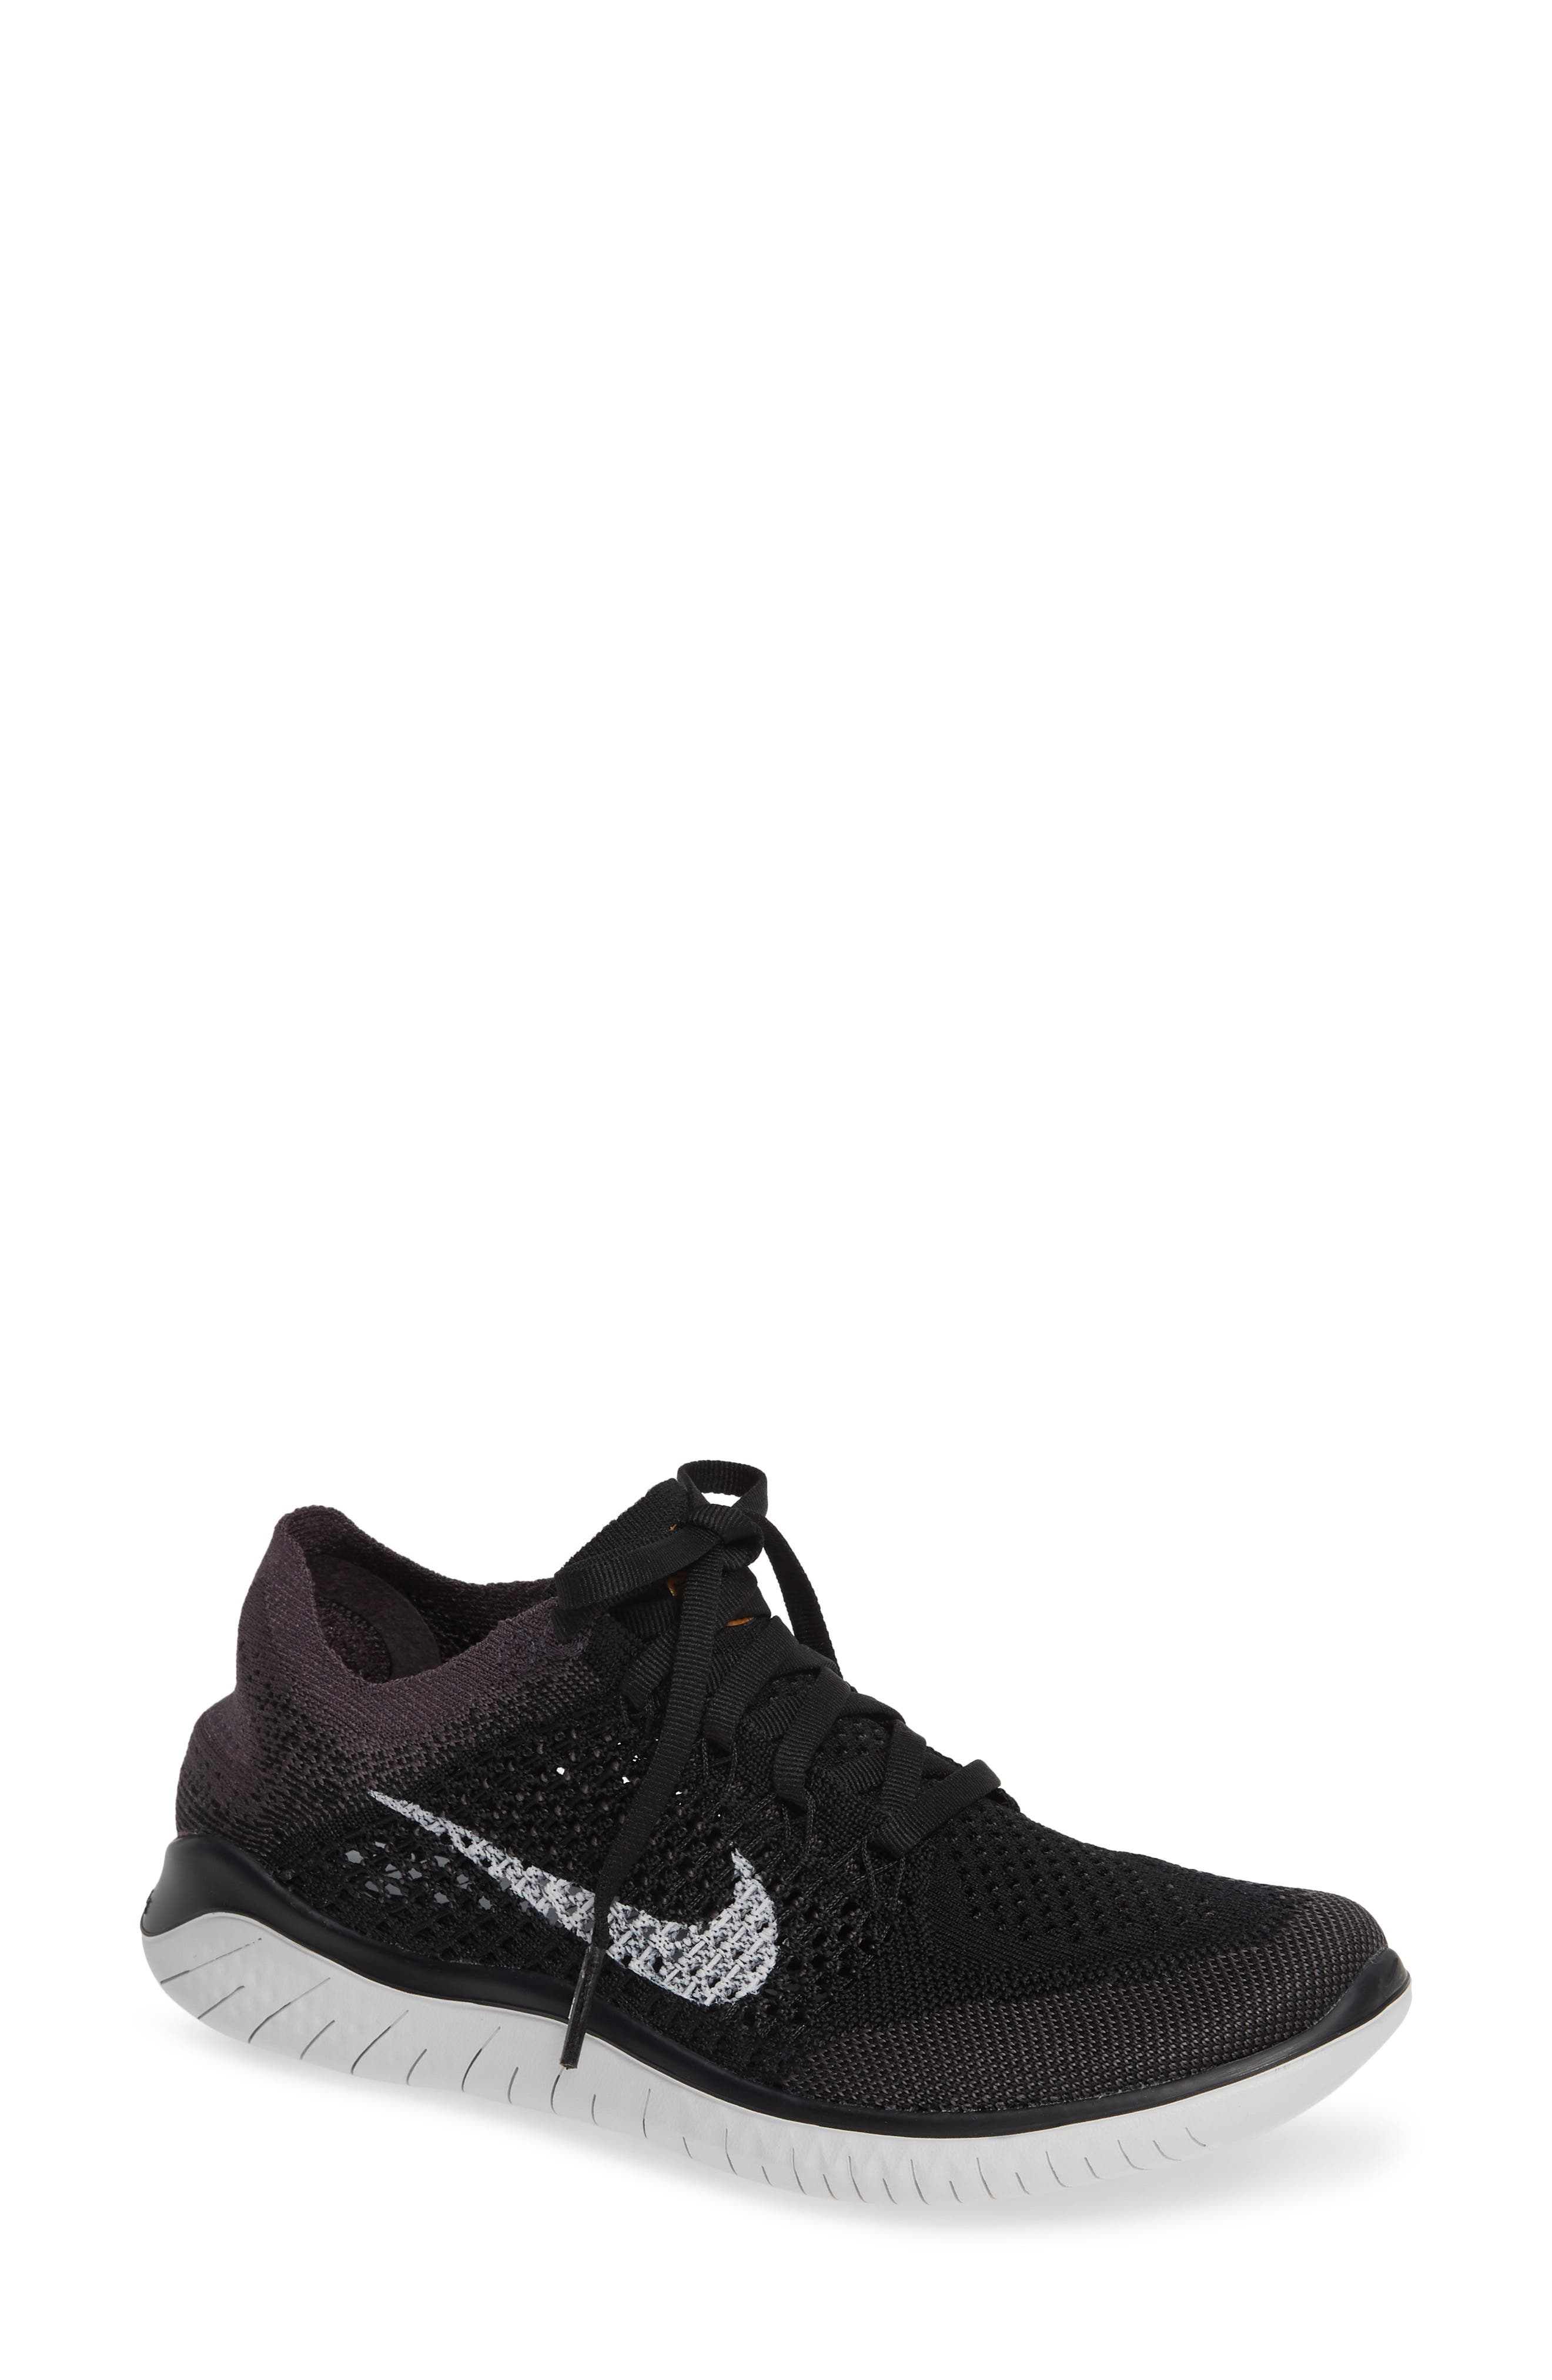 Free RN Flyknit 2018 Running Shoe,                             Main thumbnail 1, color,